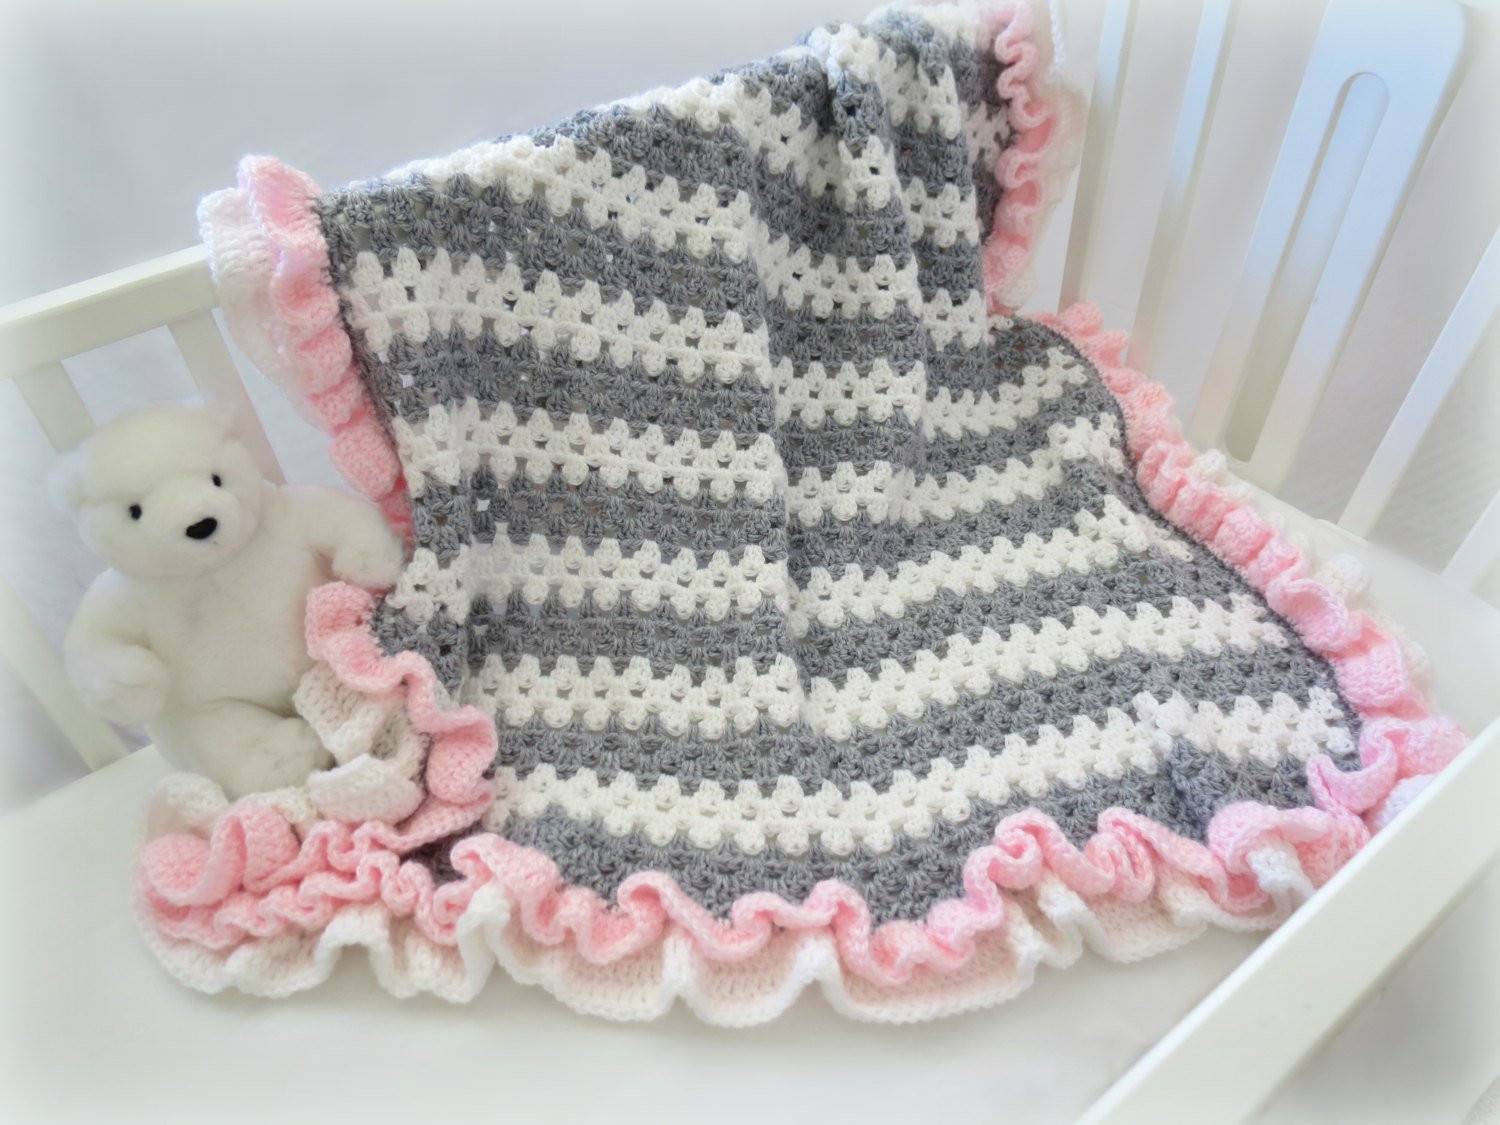 Baby Boy Crochet Blanket Patterns New Crochet Baby Blanket Pattern Baby Crochet Blanket Afghan Of Baby Boy Crochet Blanket Patterns Lovely My Crochet Part 395